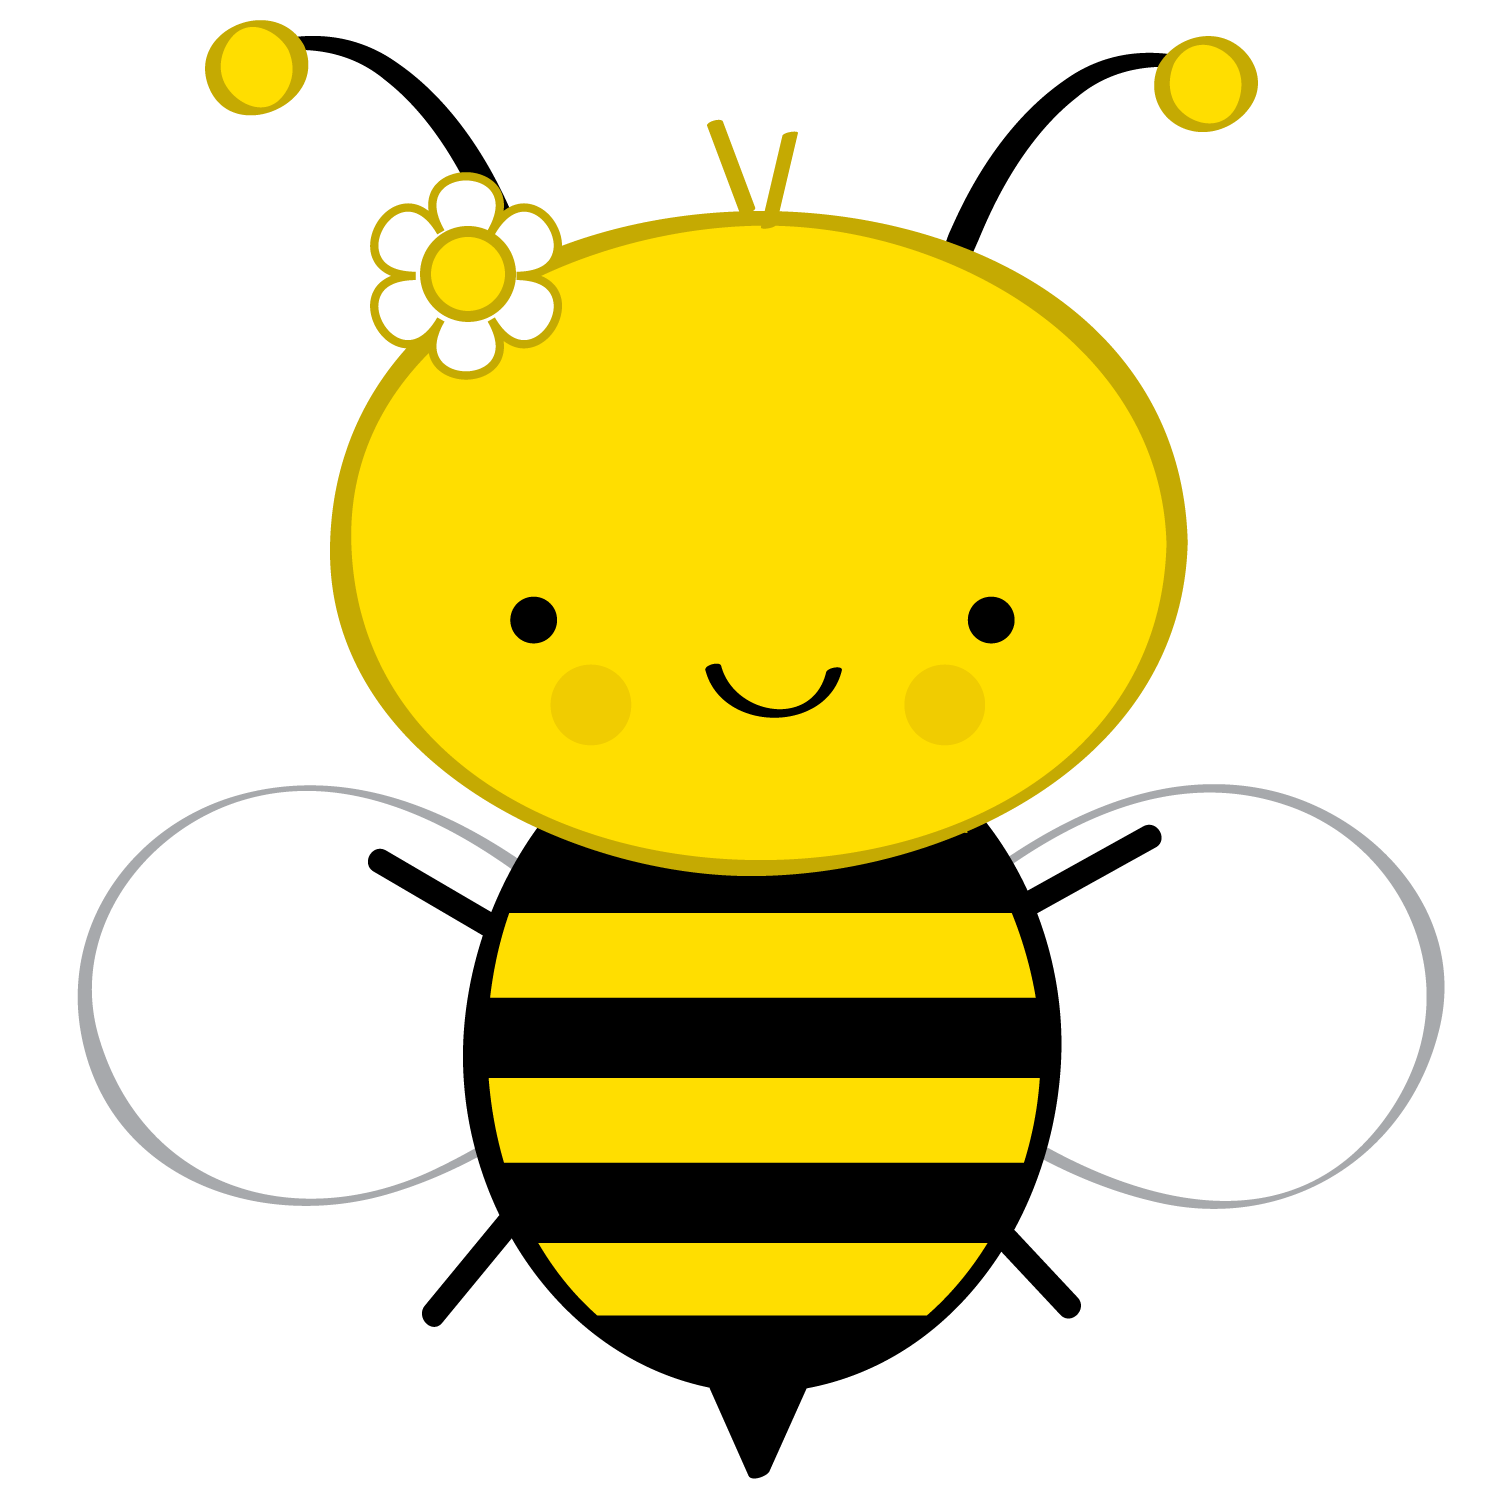 png black and white download Bumblebee clipart honey bee. Abelhinhas png minus dibujos